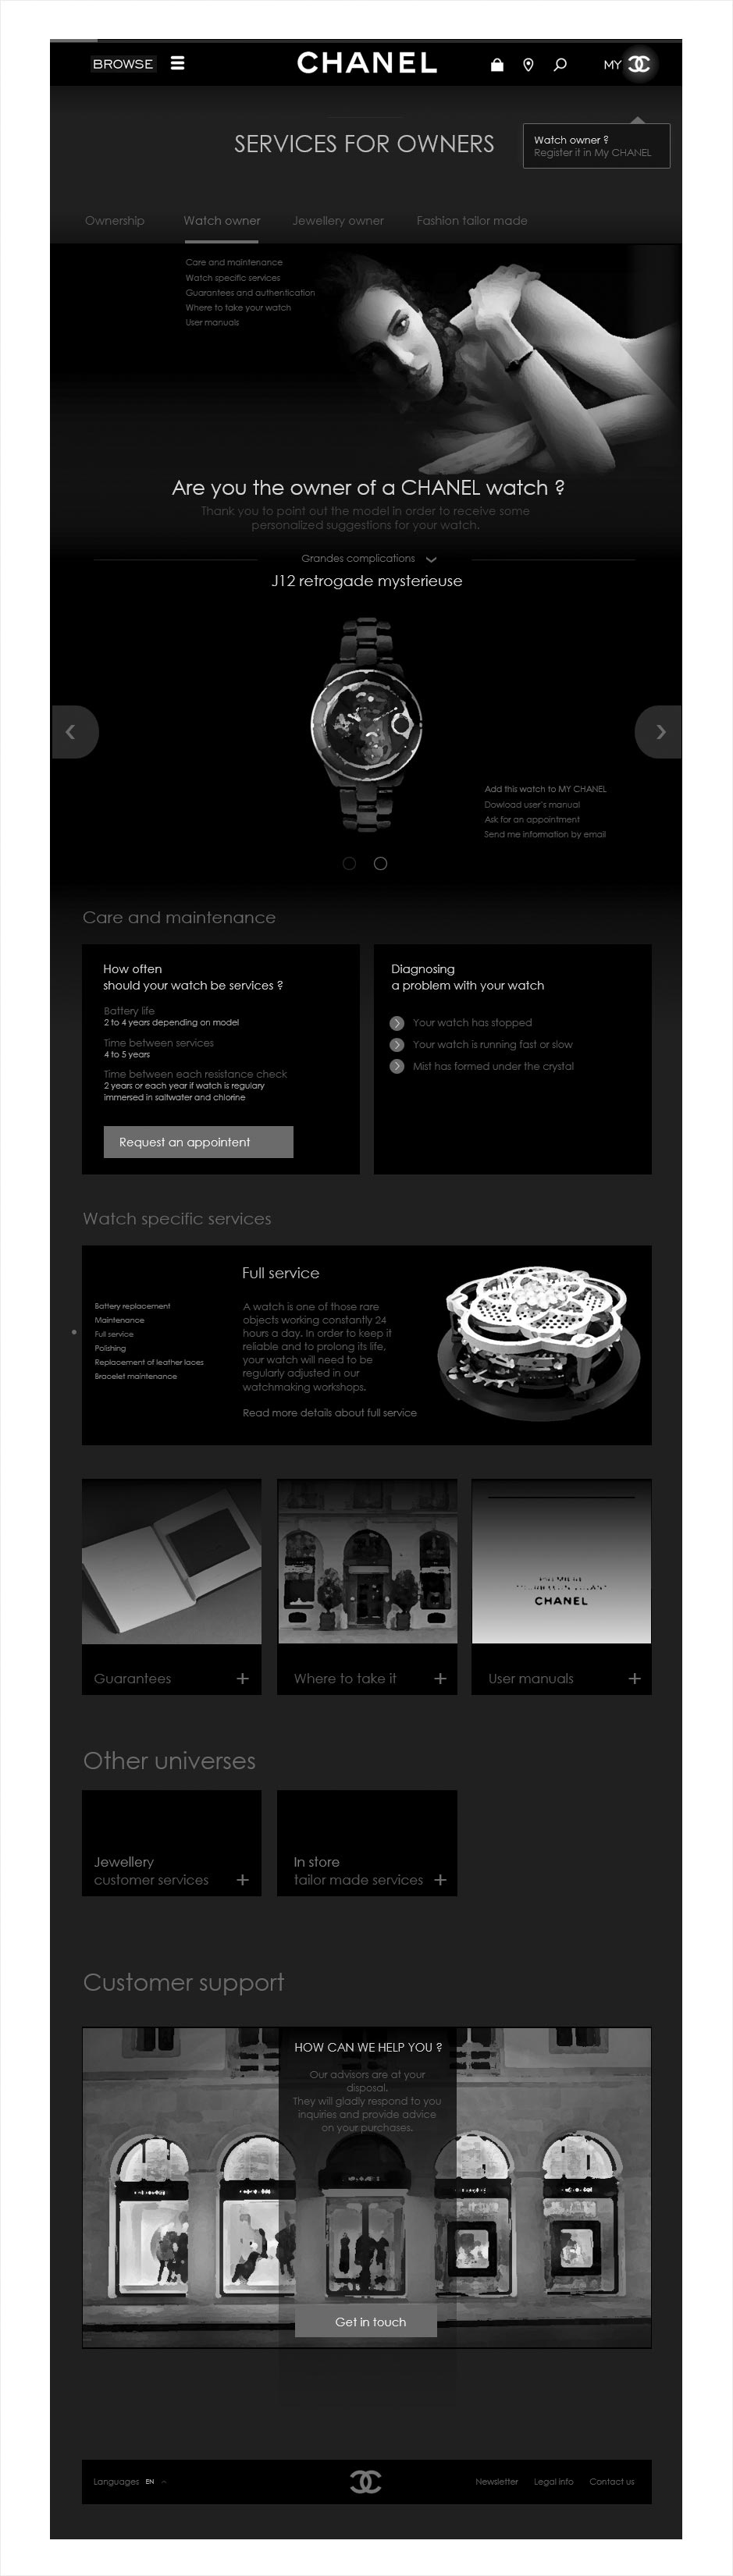 services clients, wireframe espace client CHANEL